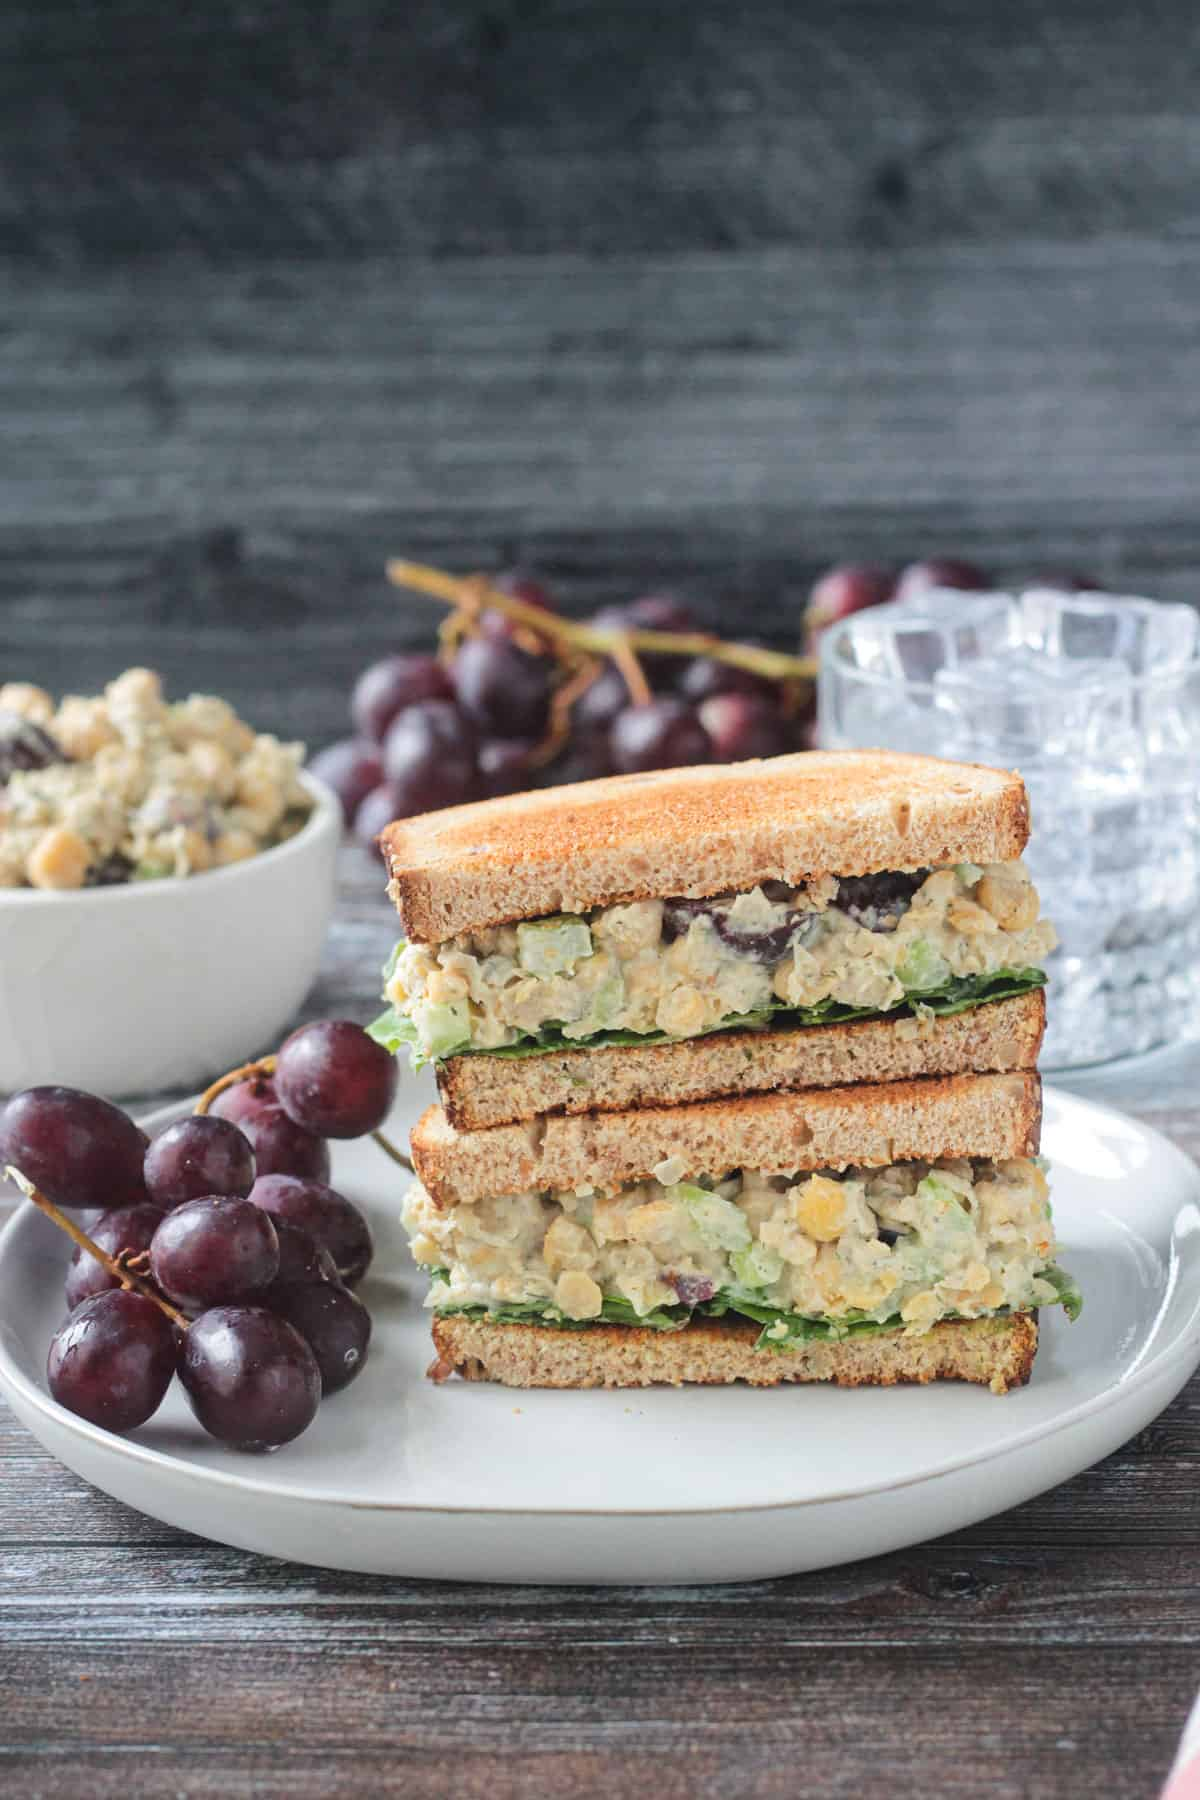 Stacked sandwich halves on a plate with a bunch of red grapes.